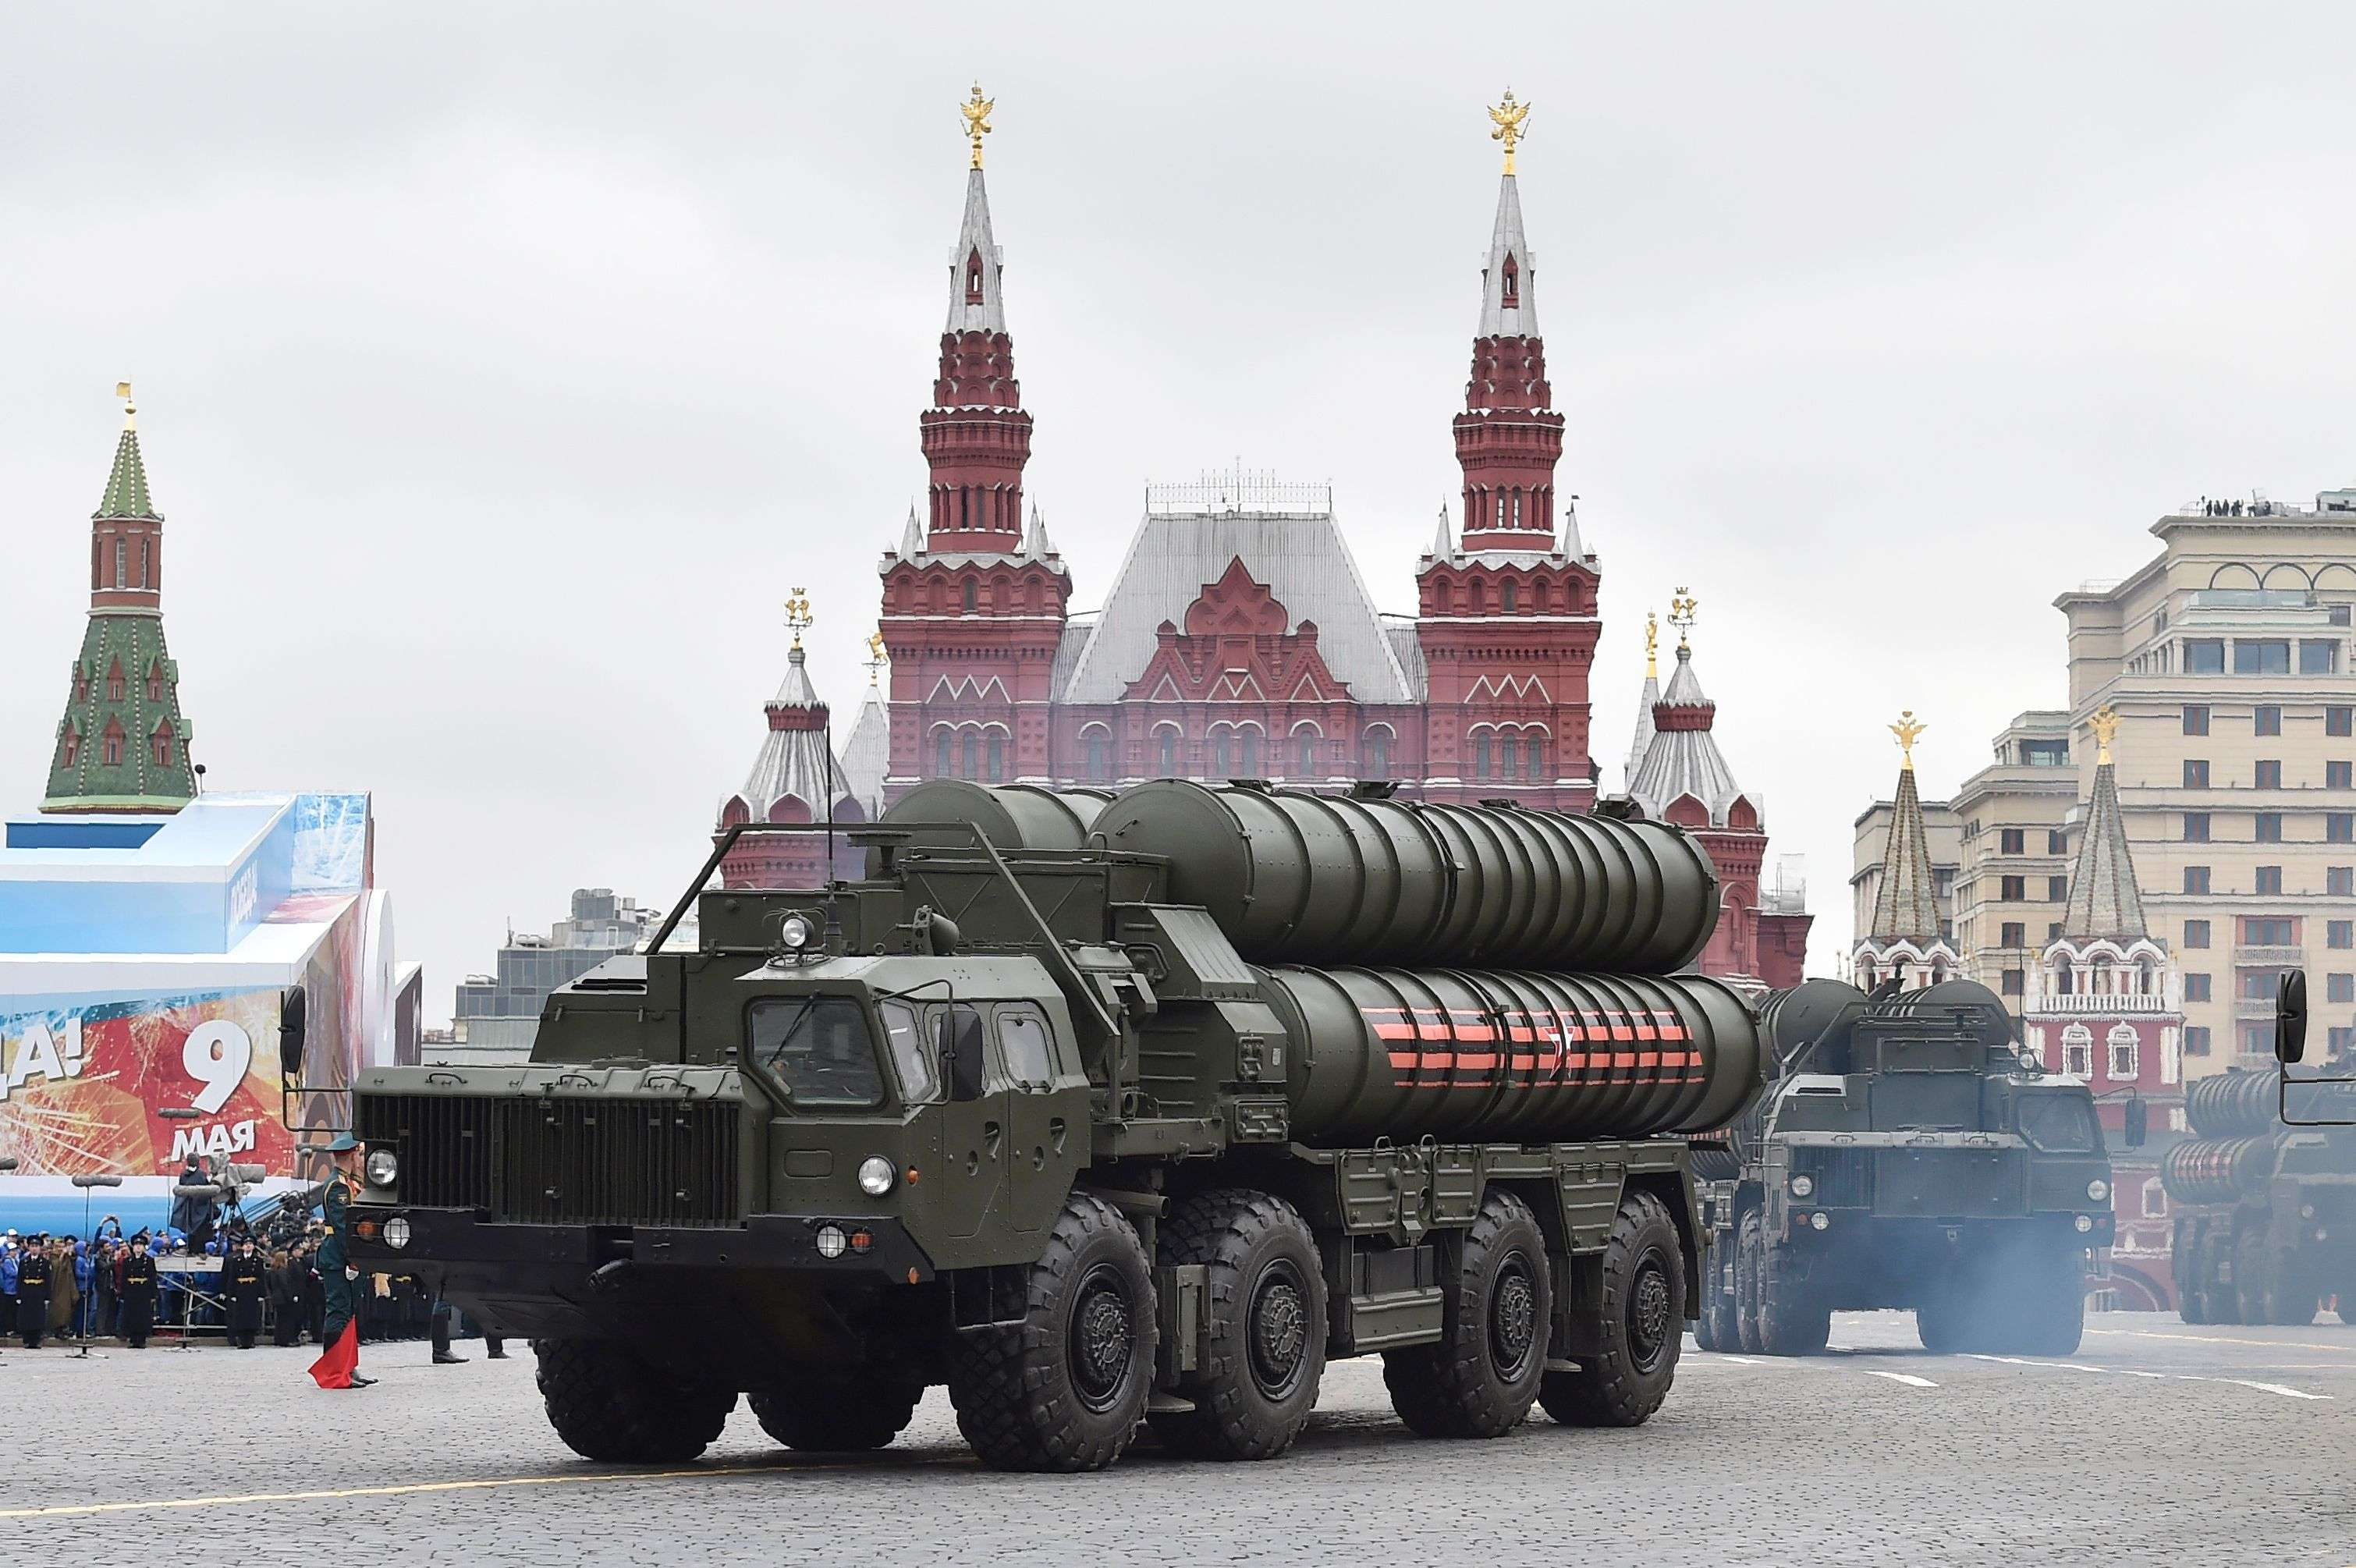 Russian S-400 Triumph medium-range and long-range surface-to-air missile systems ride through Red Square in Moscow. (AFP)